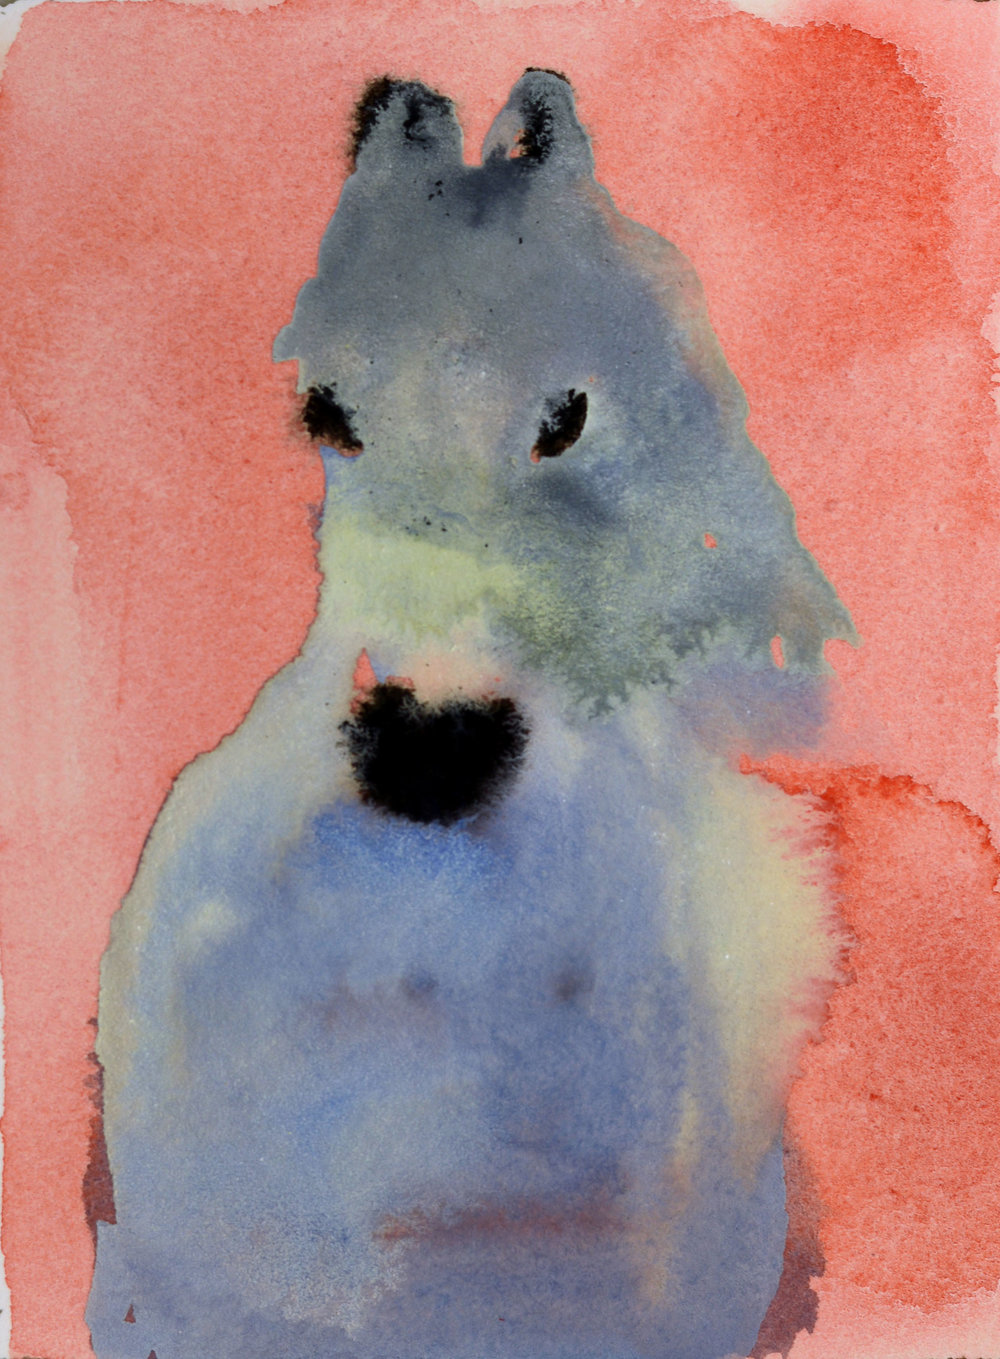 White Horse (on Pink)_4x3 inset on 11 x 7.5 paper.jpg